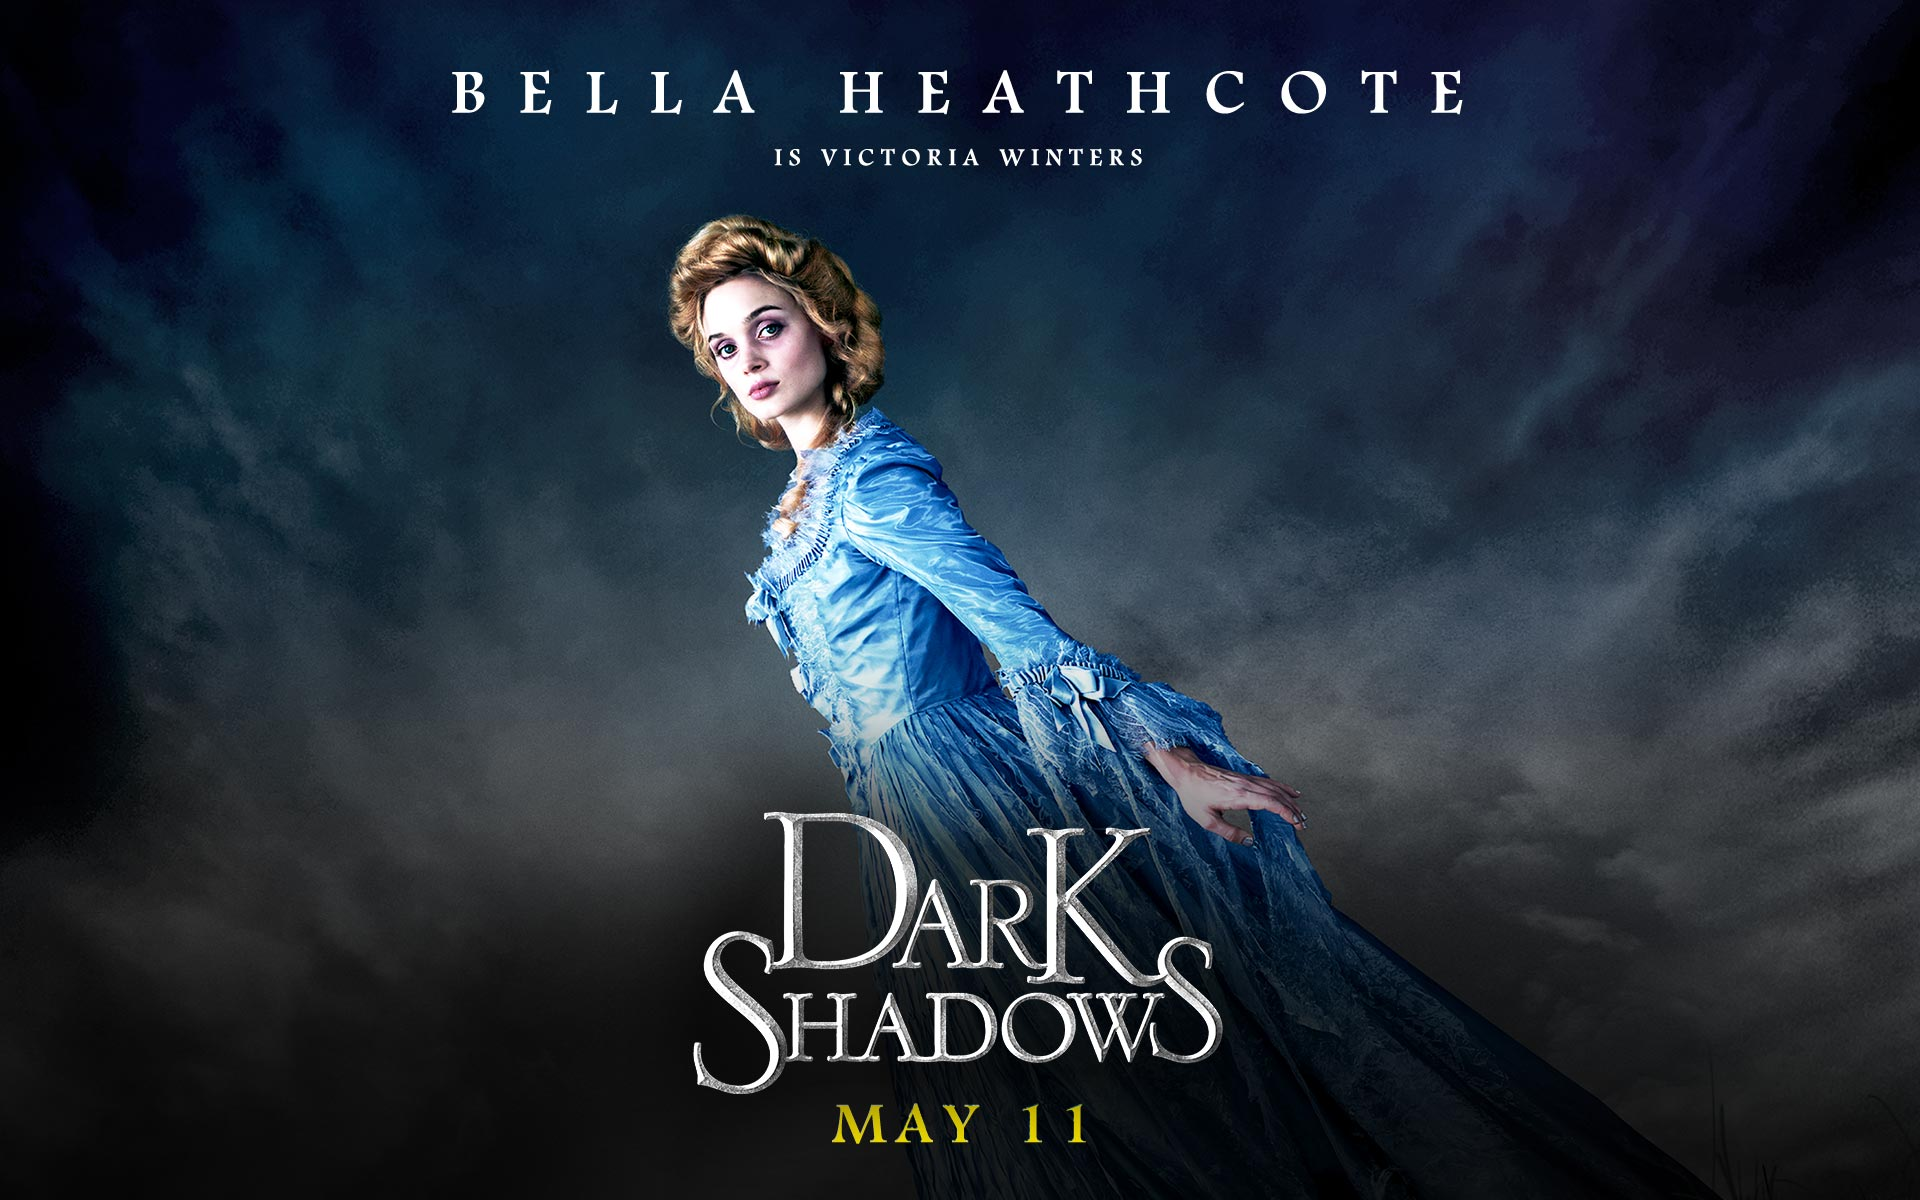 Dark Shadows wallpapers 19201200 Bella Heathcote as Victoria 1920x1200